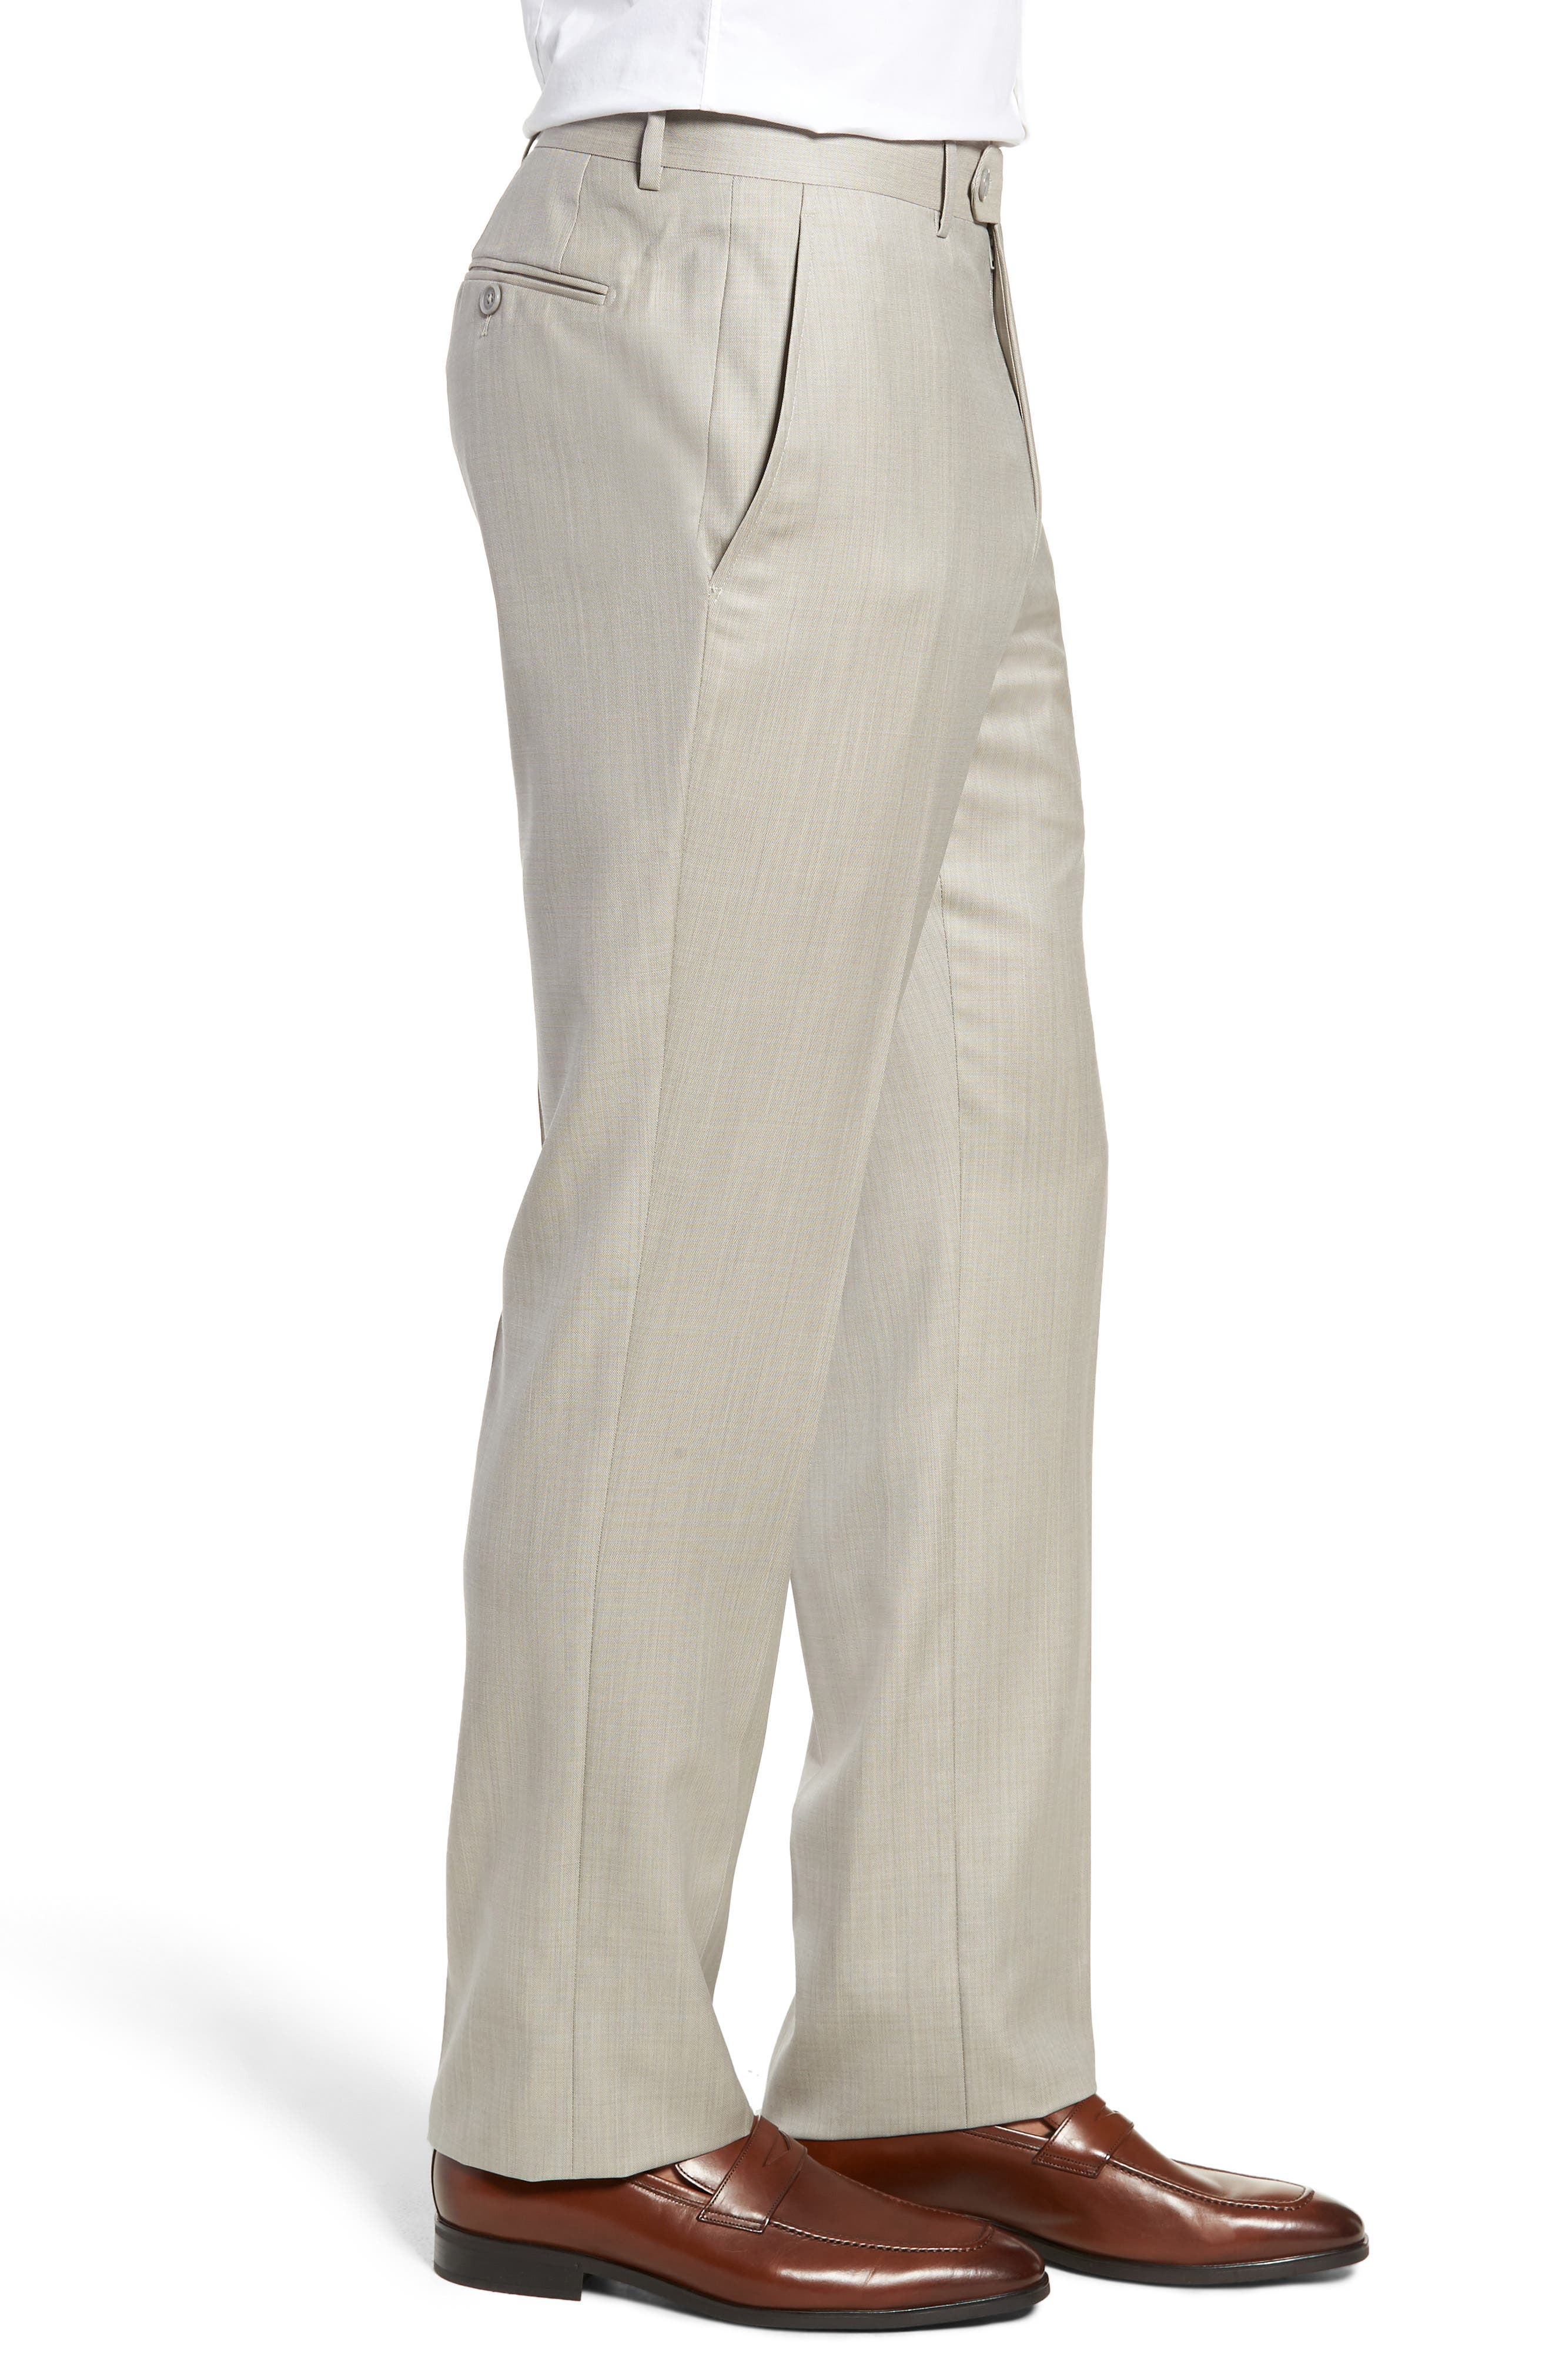 Flat Front Sharkskin Wool Trousers,                             Alternate thumbnail 3, color,                             SAND